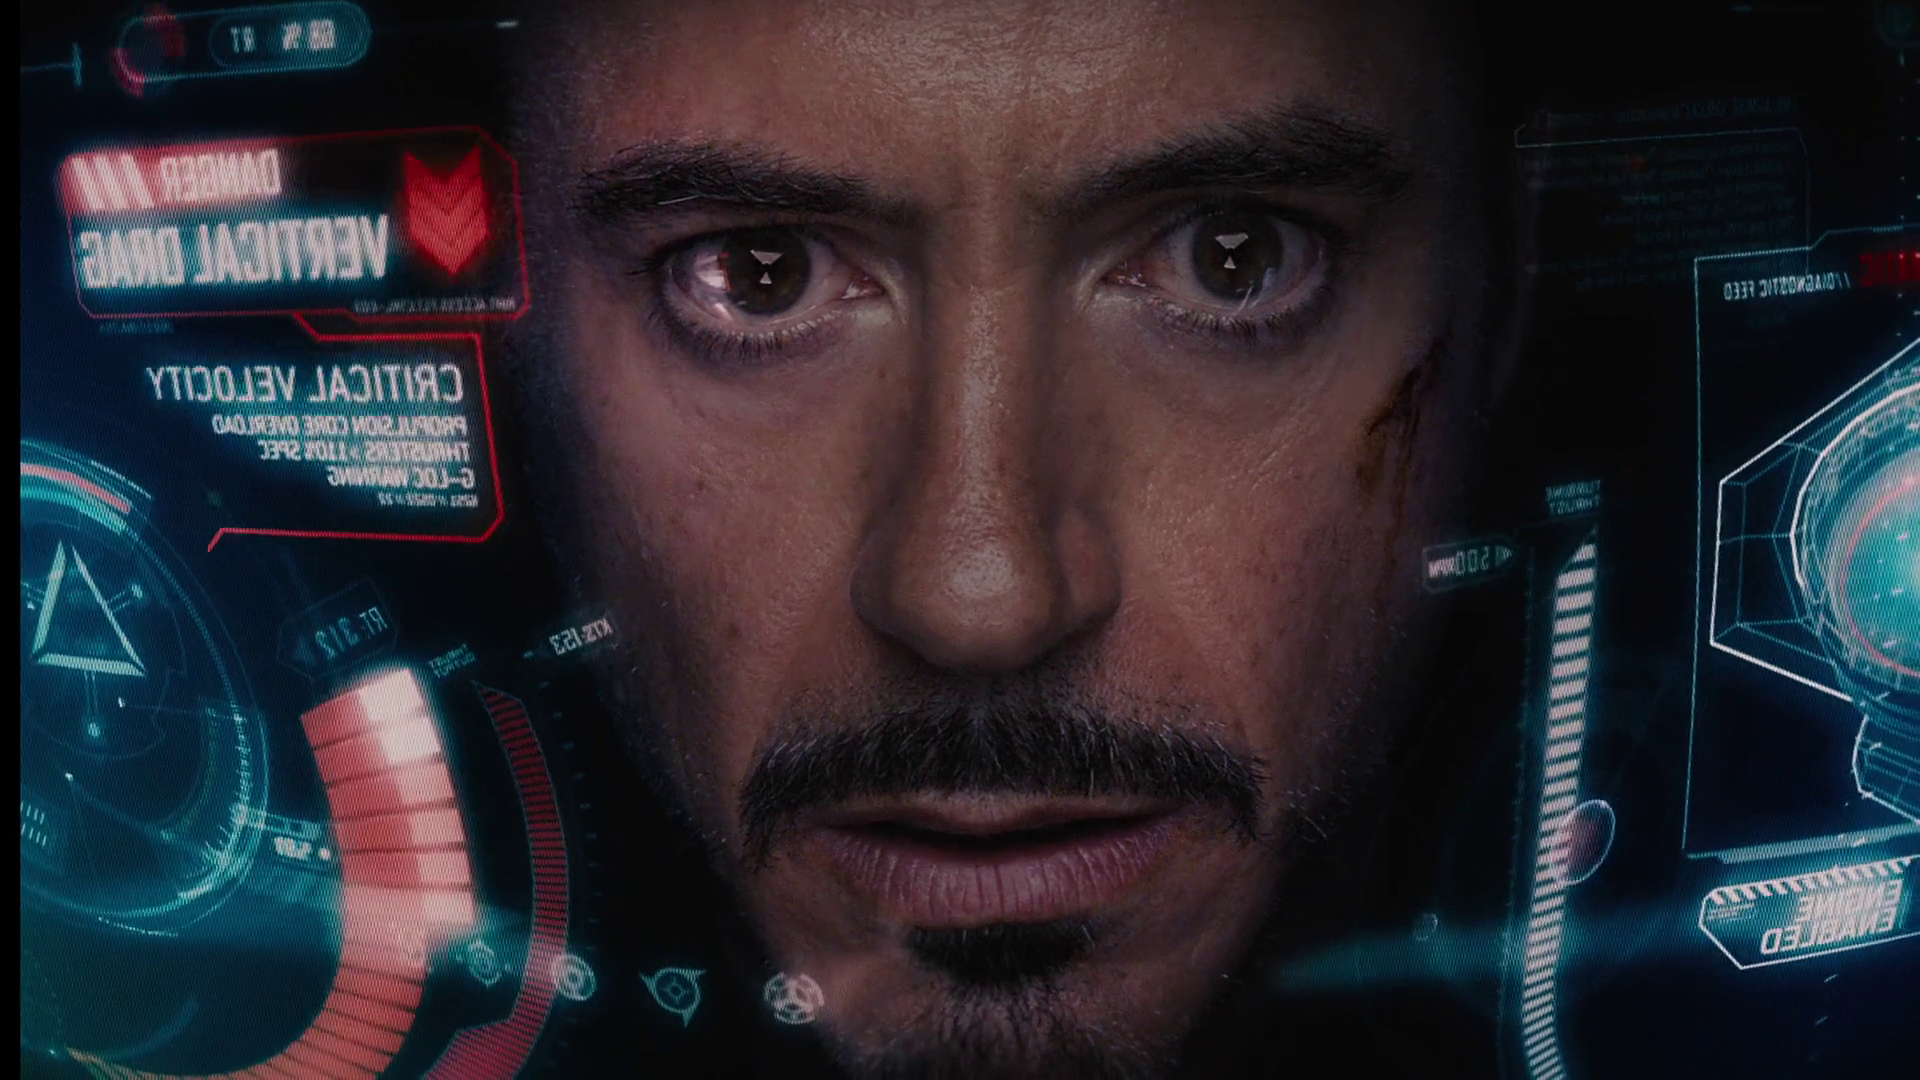 When J.A.R.V.I.S. becomes Vision in Avengers: Age of Ultron, what is the name of A.I. programme that Tony Stark replaces him with?